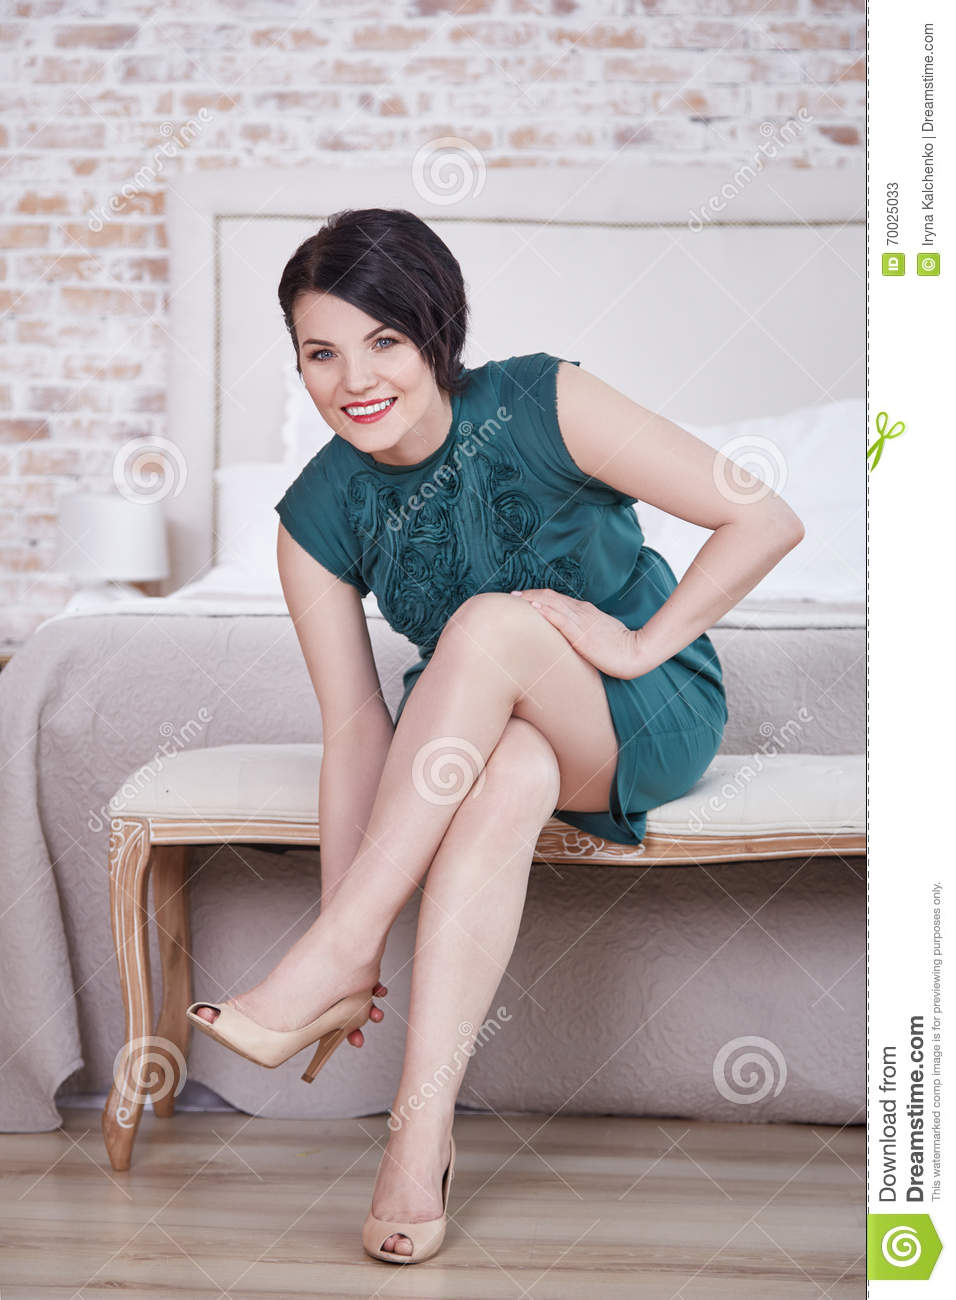 Beautiful woman brunette hair natural makeup wear short silk green dress high heels shoes sit on chair in interior bedroom home housewife light loft design ...